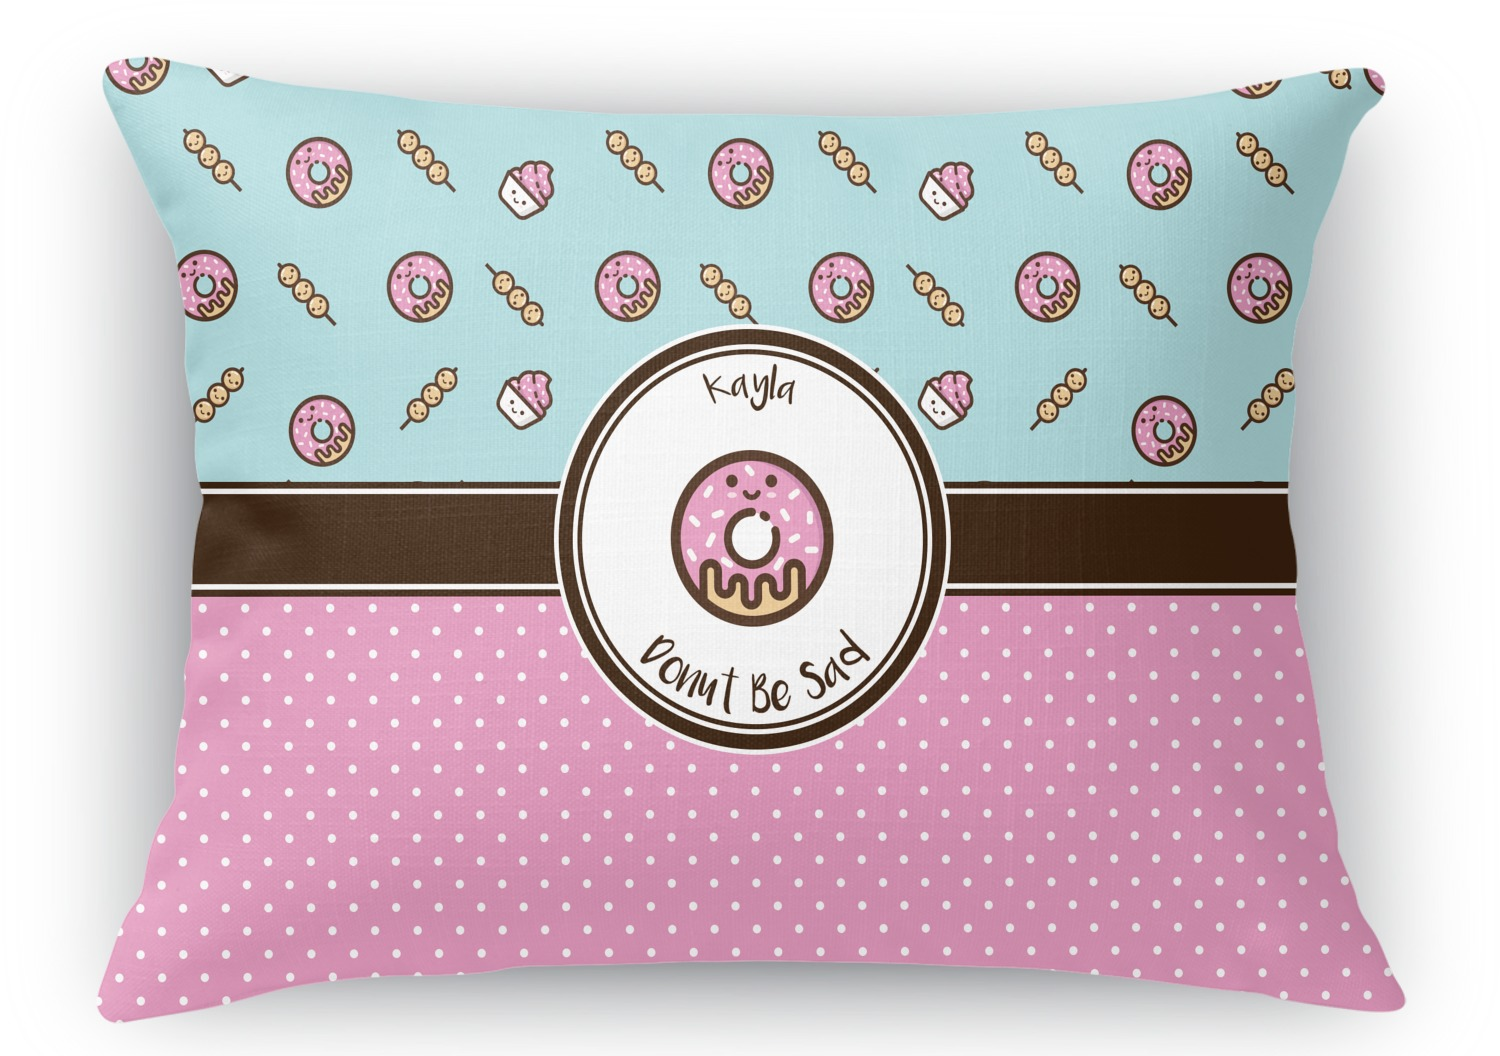 Rectangular Throw Pillow Dimensions : Donuts Rectangular Throw Pillow - 18